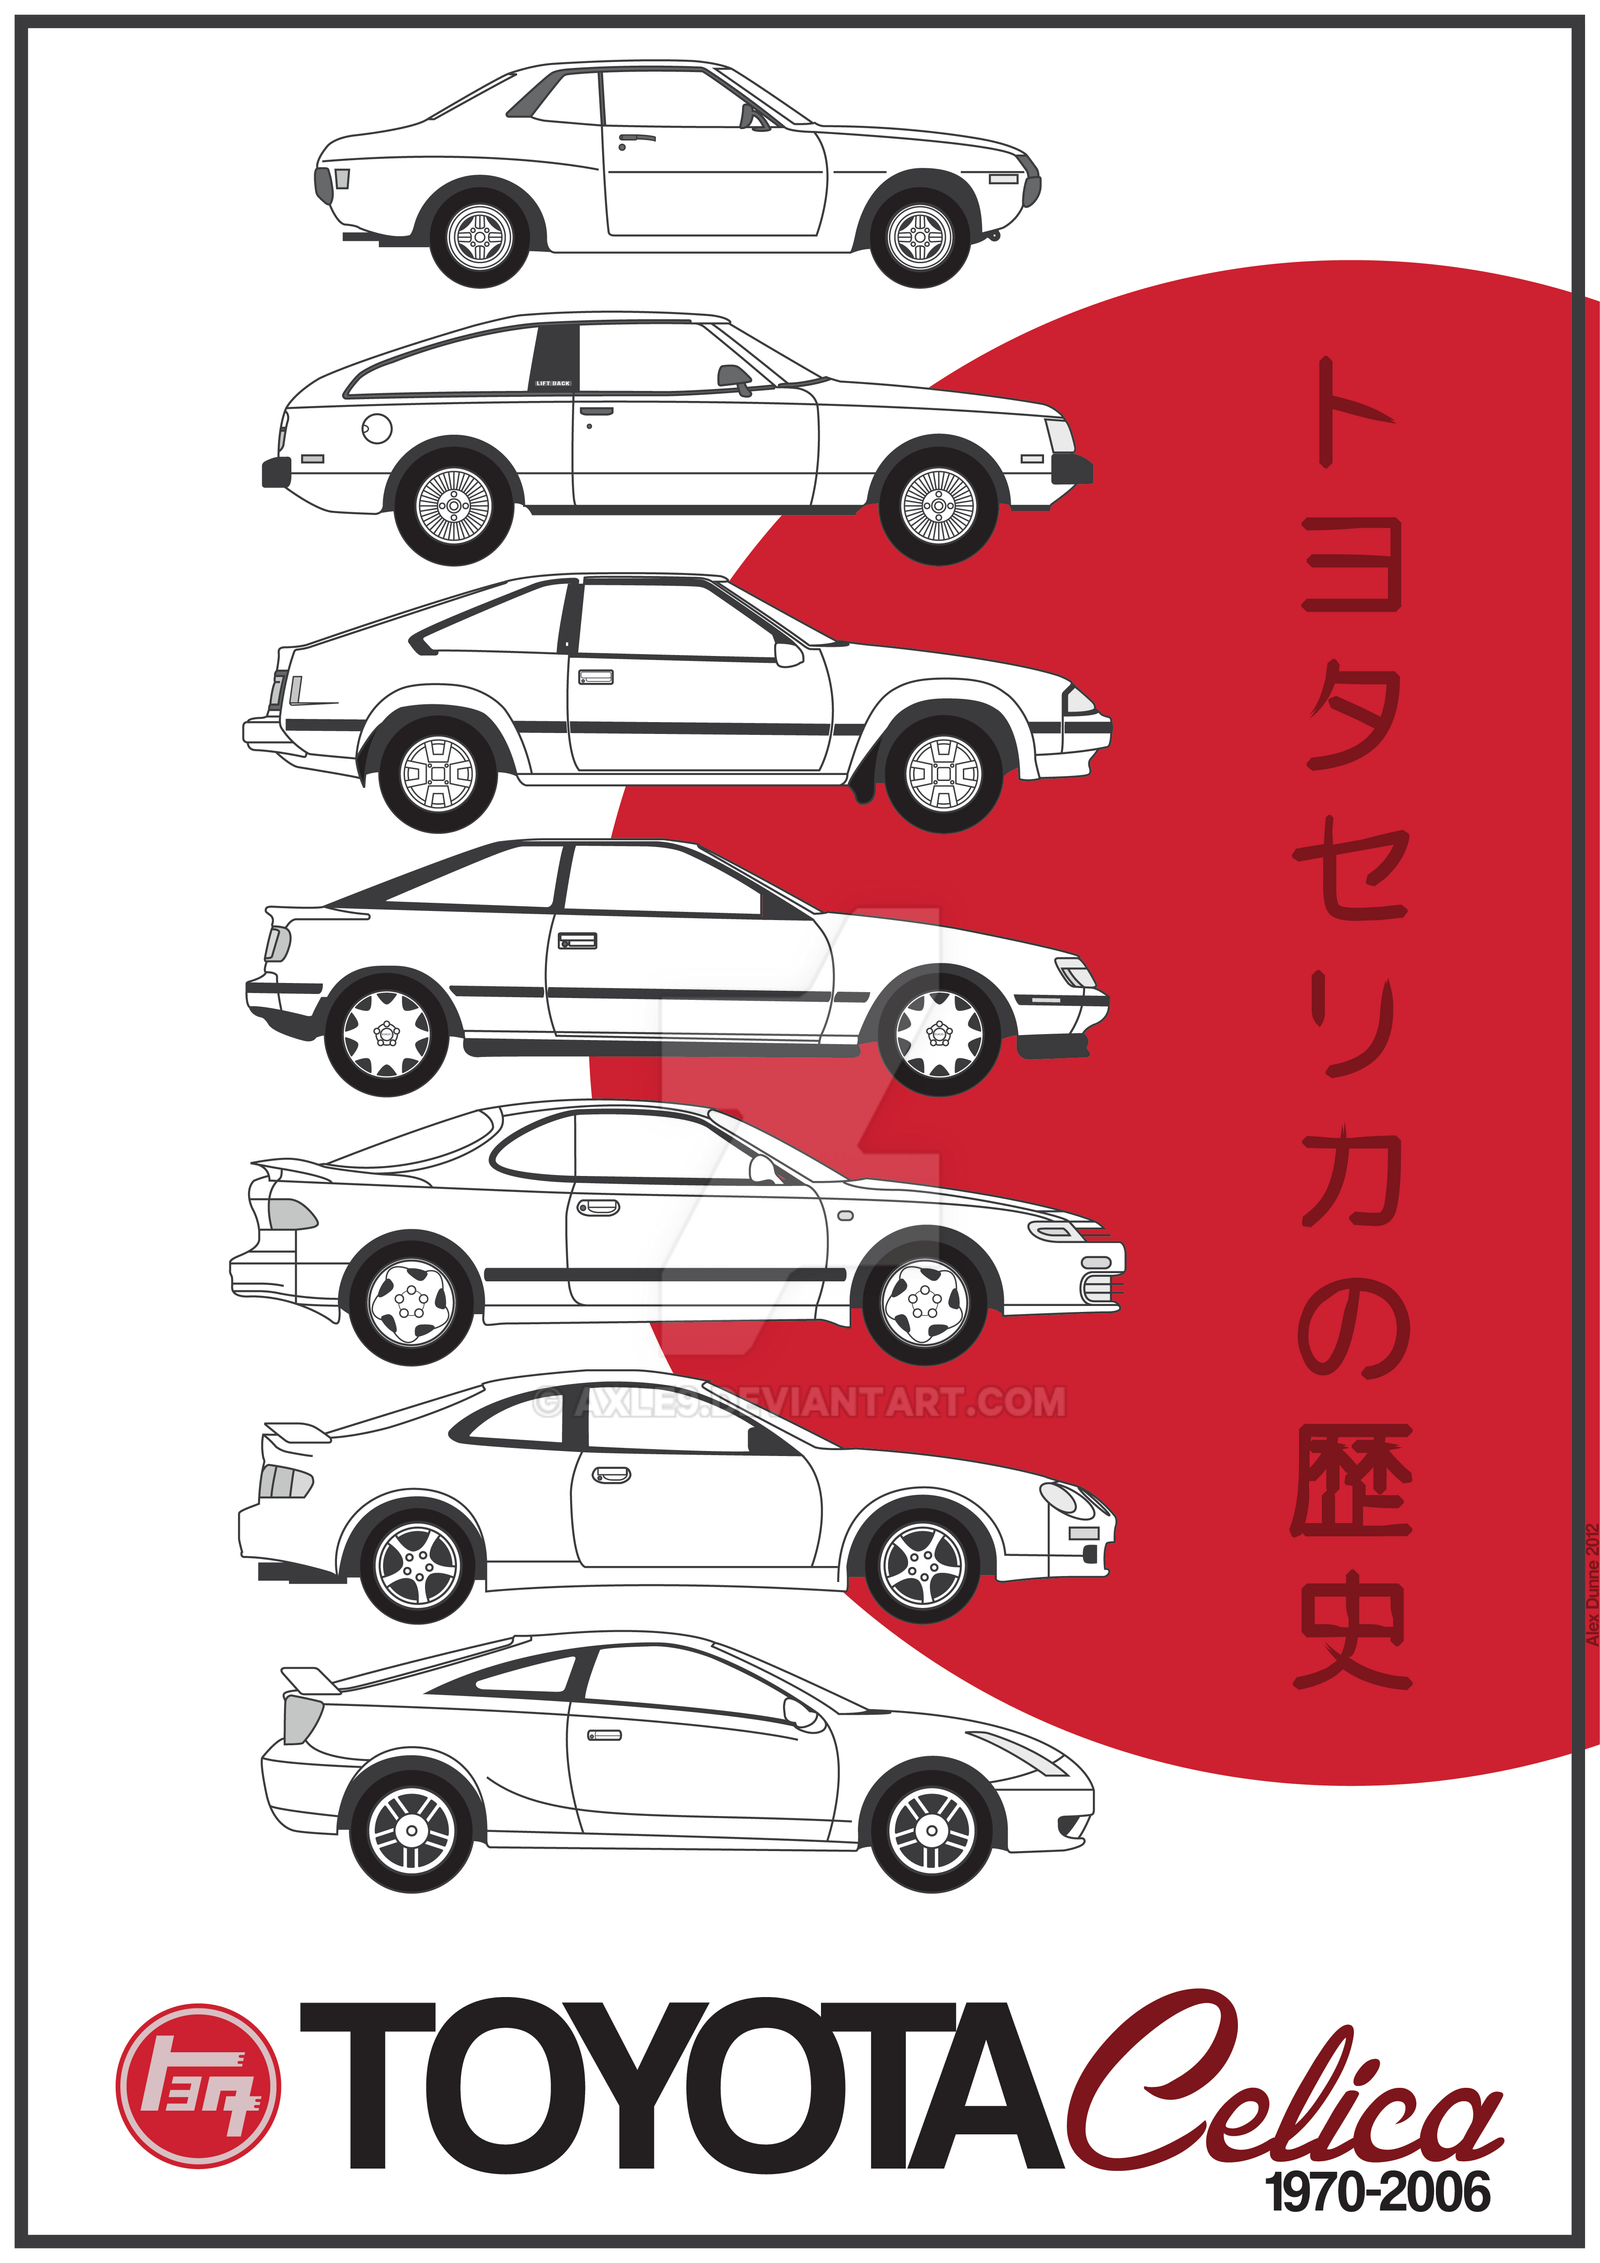 Toyota Celica History By Axle9 On Deviantart